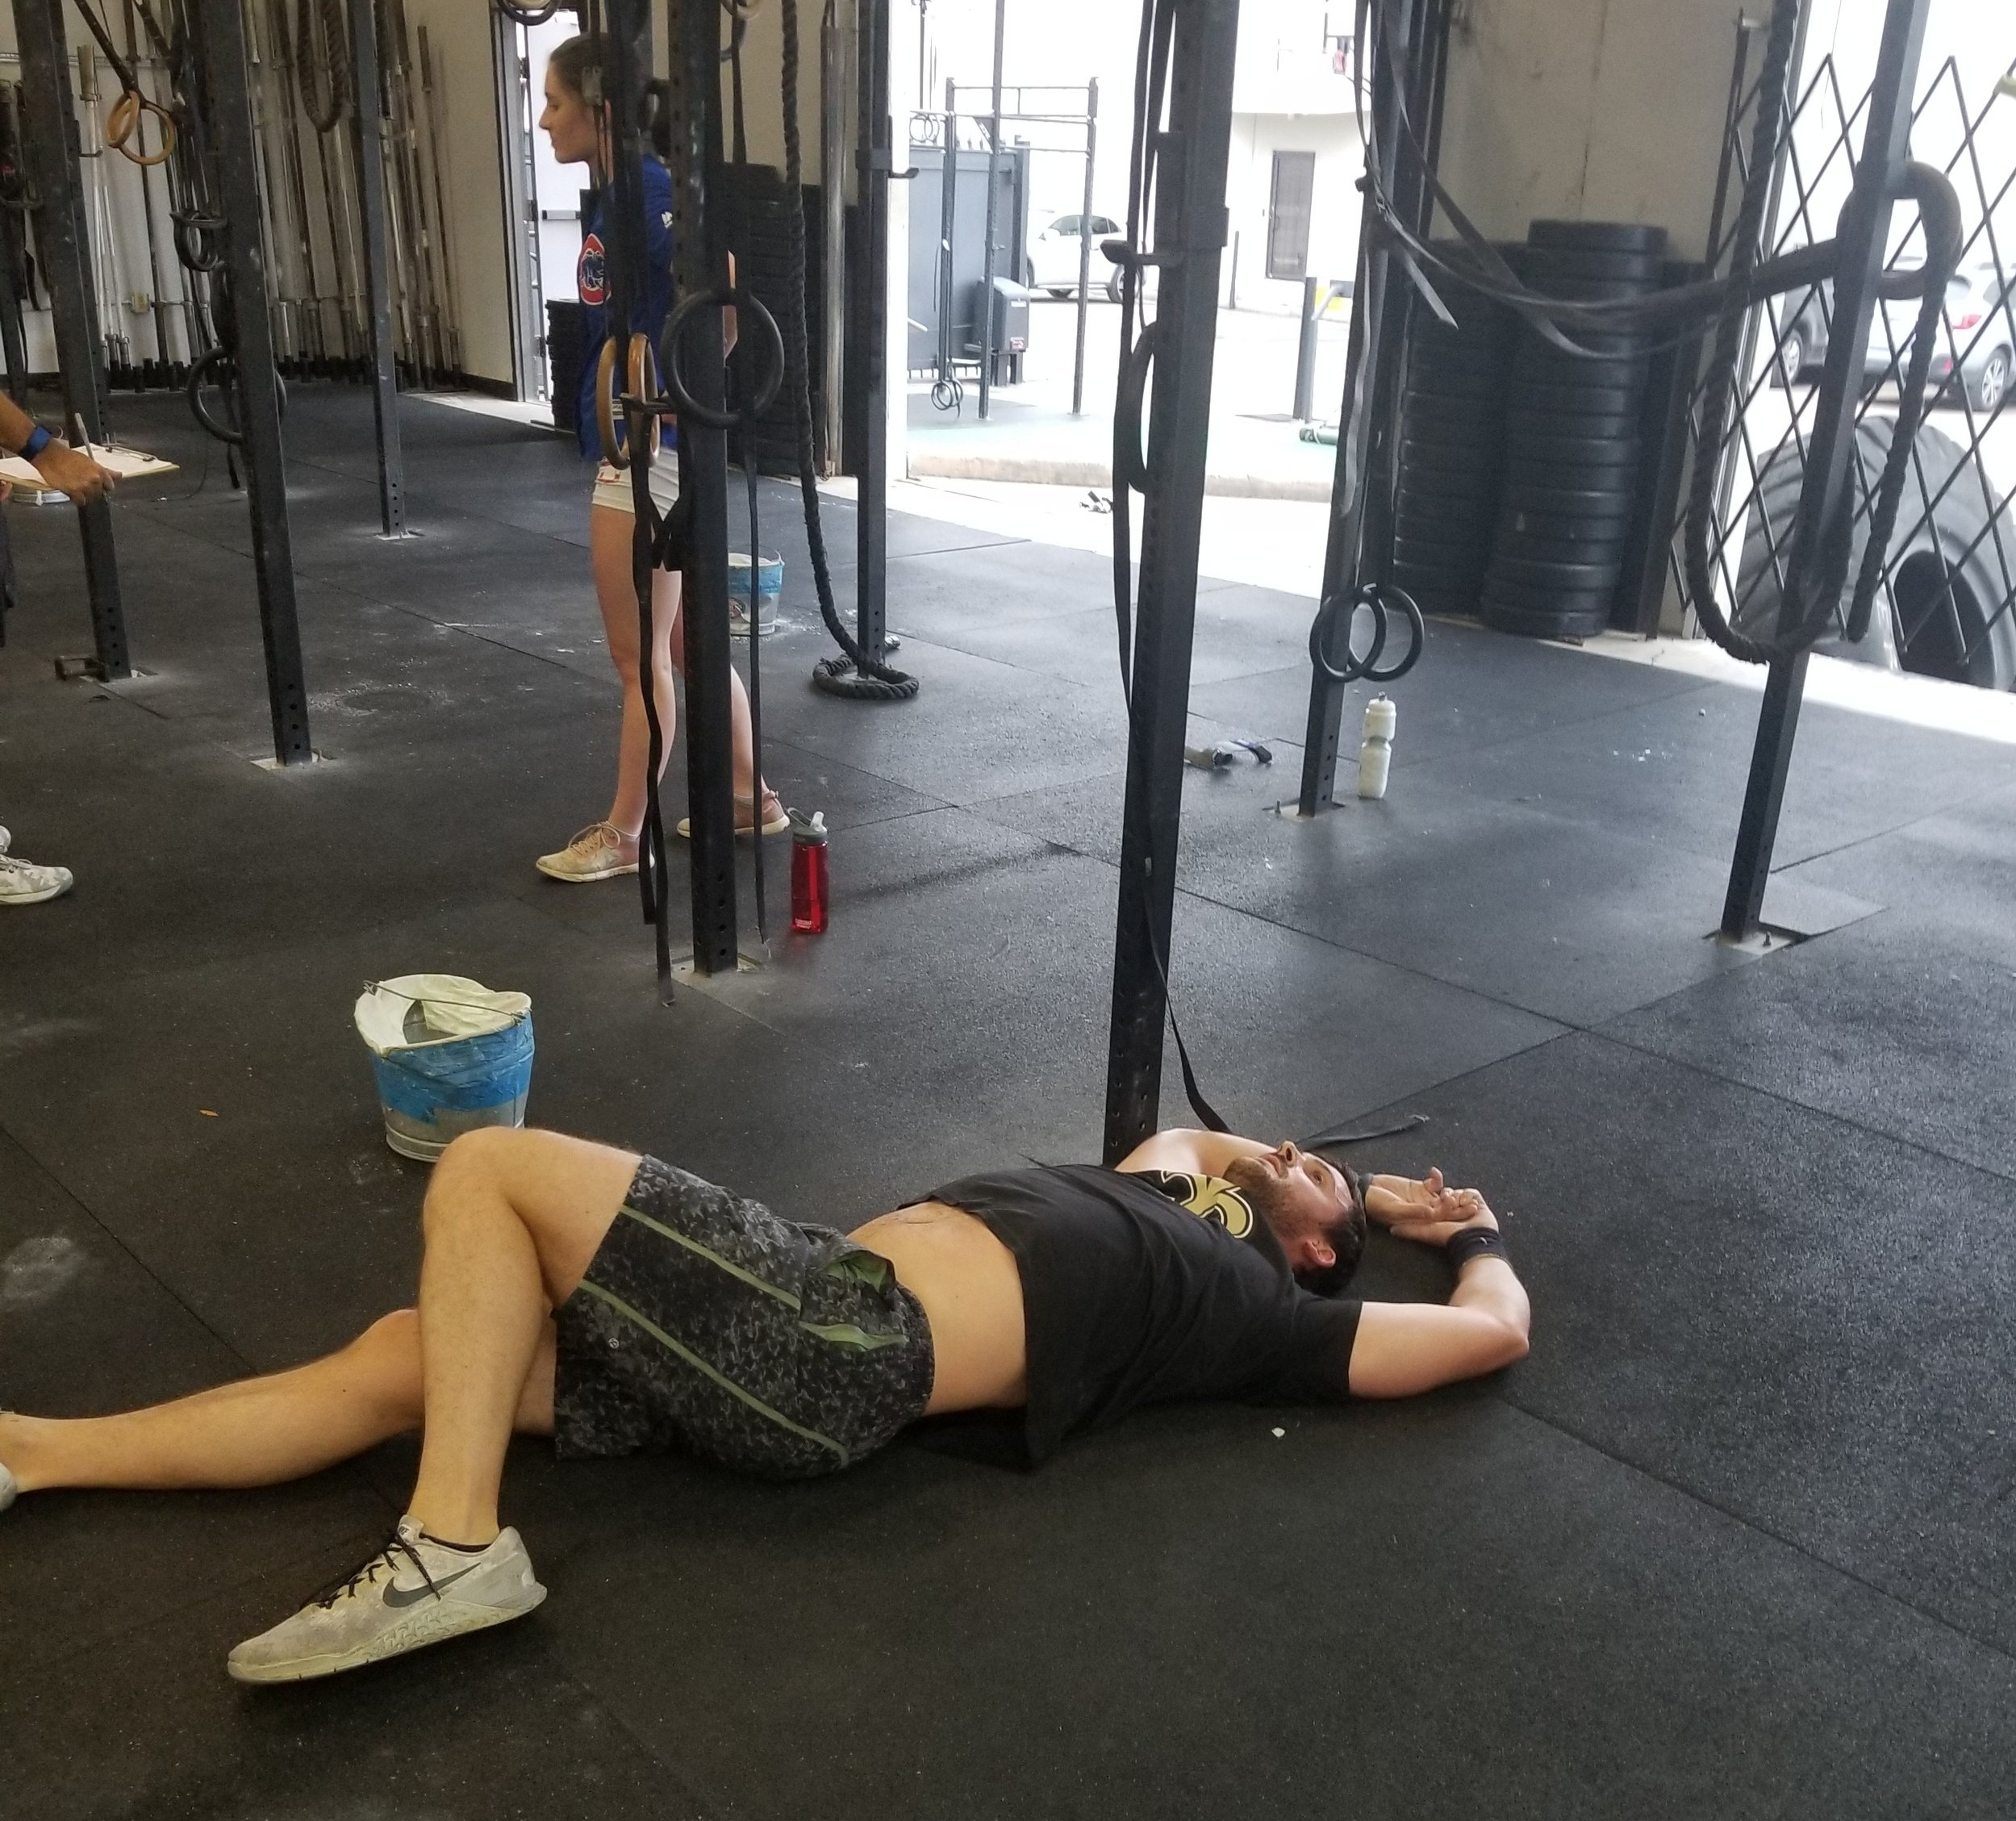 Skyline Newcomer Ryan L. after finishing Open workout 19.4.  Welcome to Skyline CrossFit Ryan!